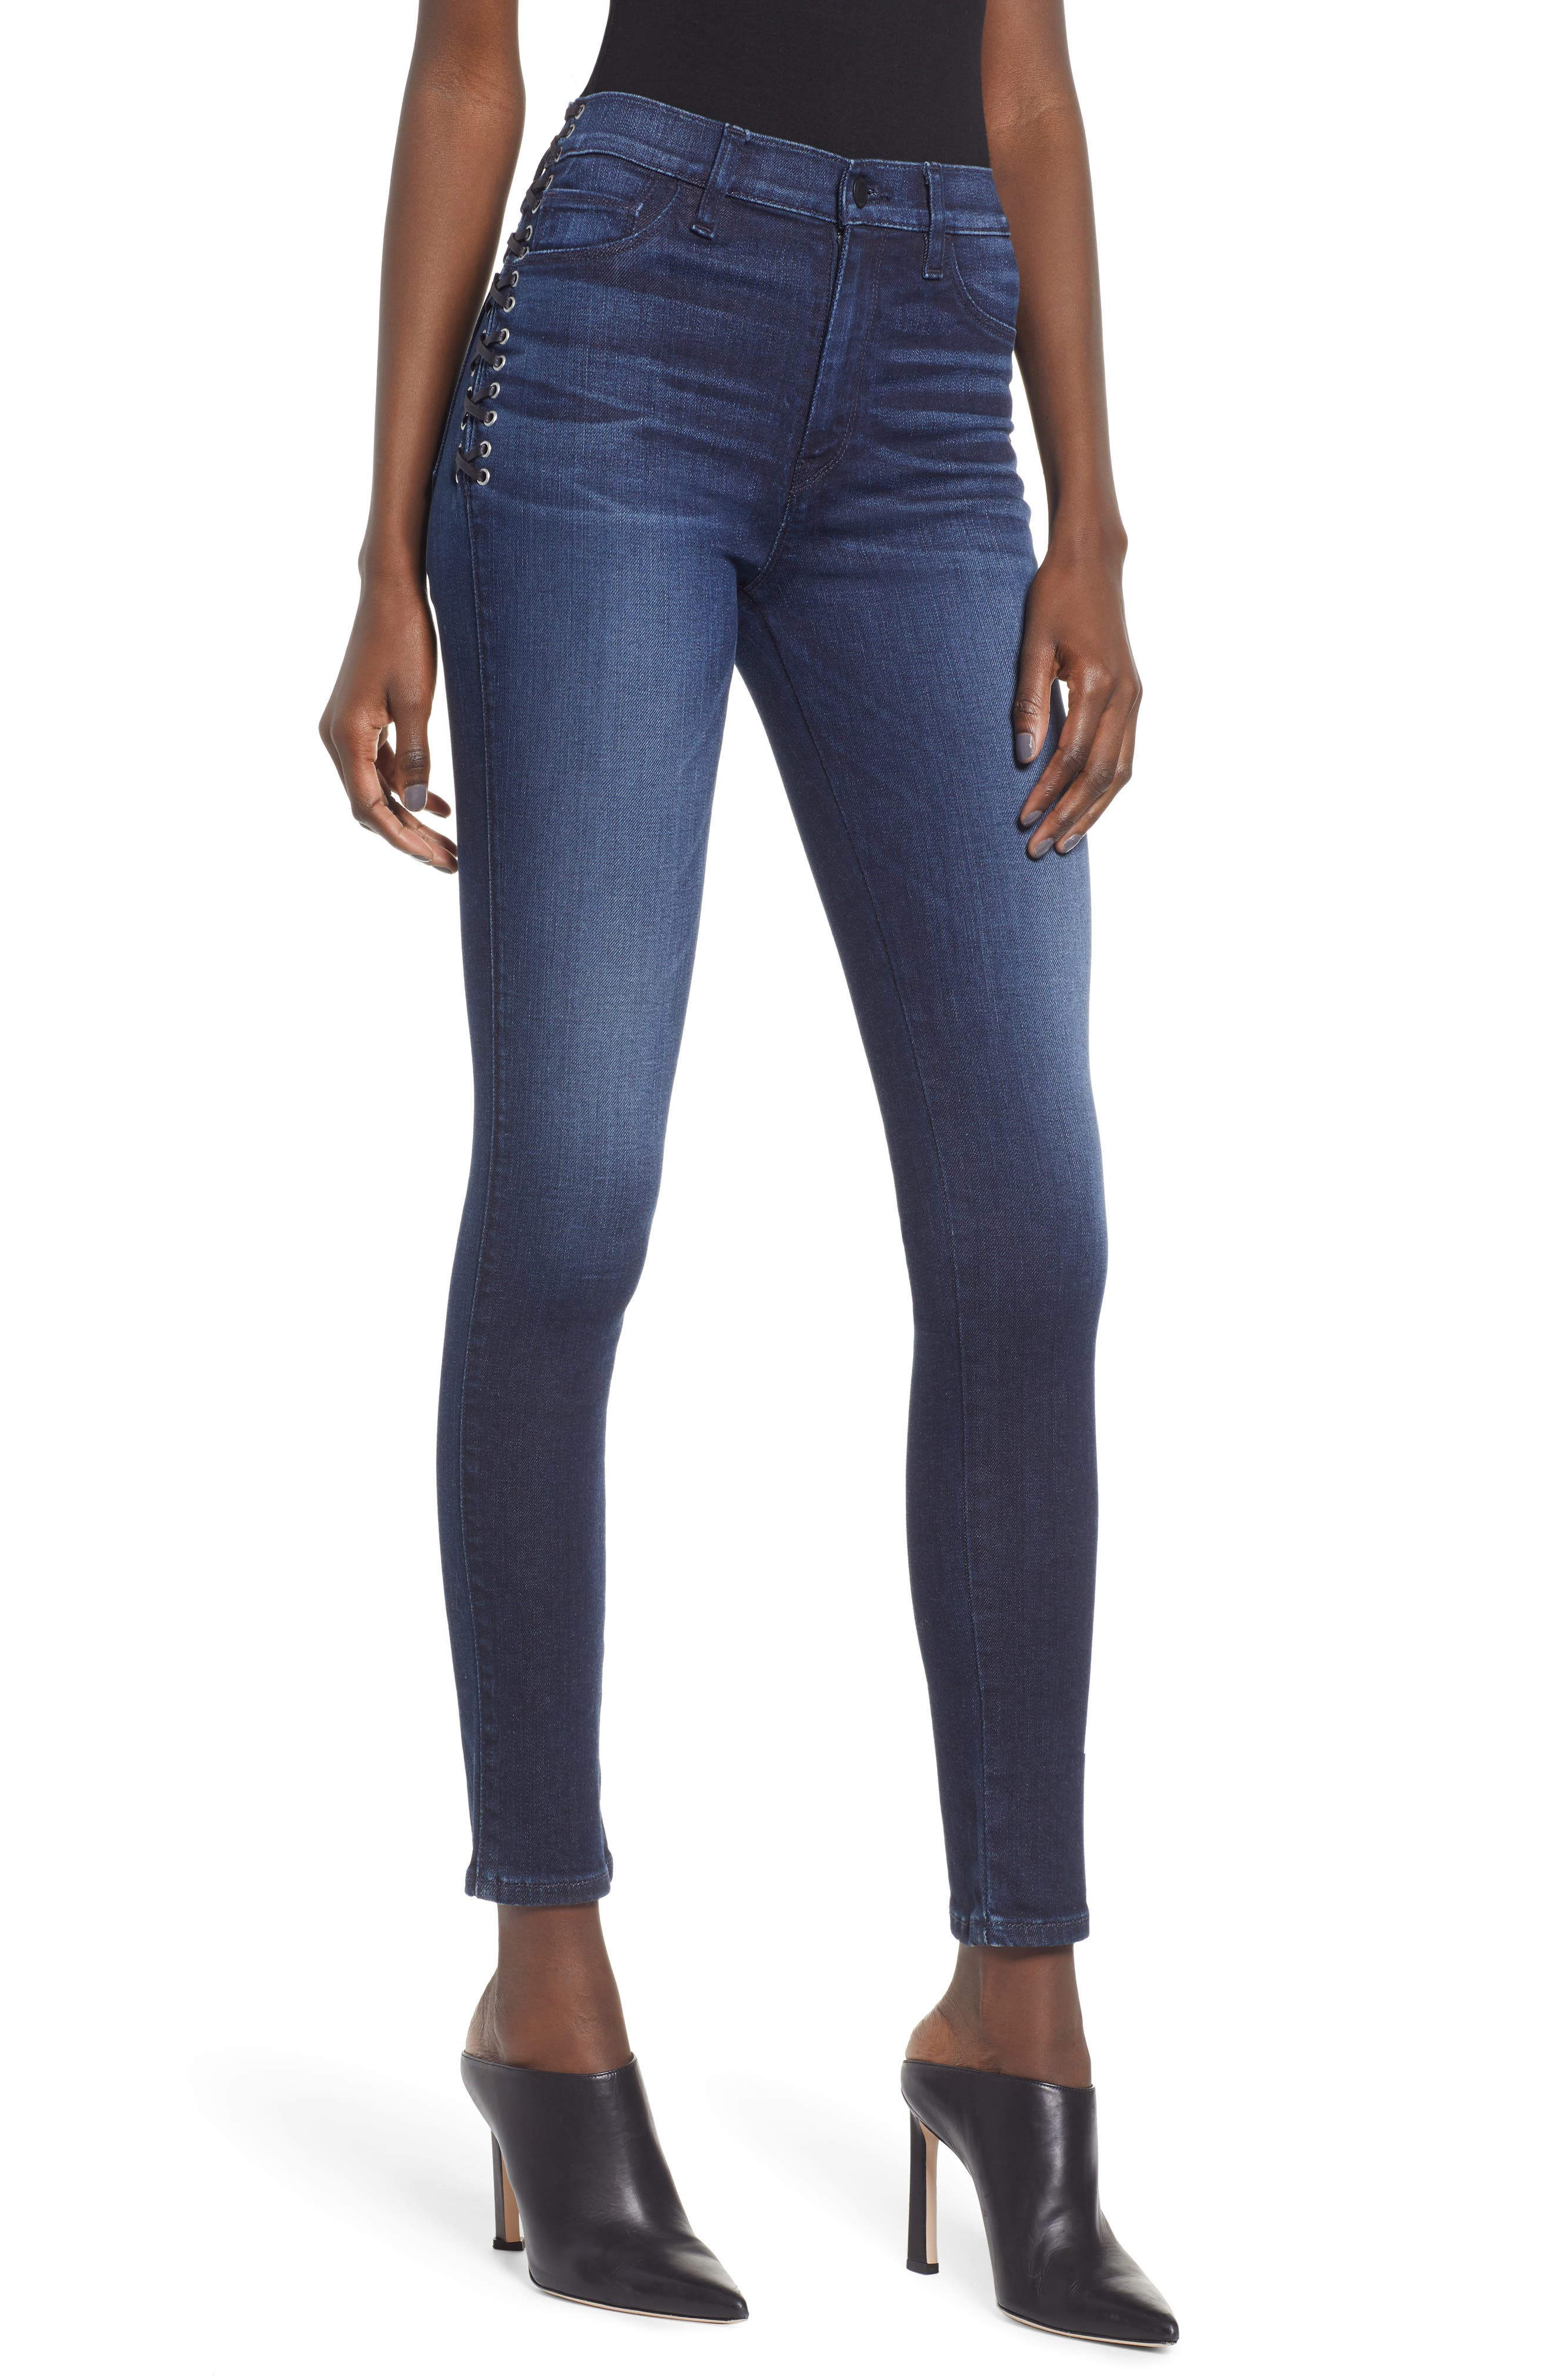 Barbara Lace-Up Ankle Skinny Jeans In Moonlight in Moon Light